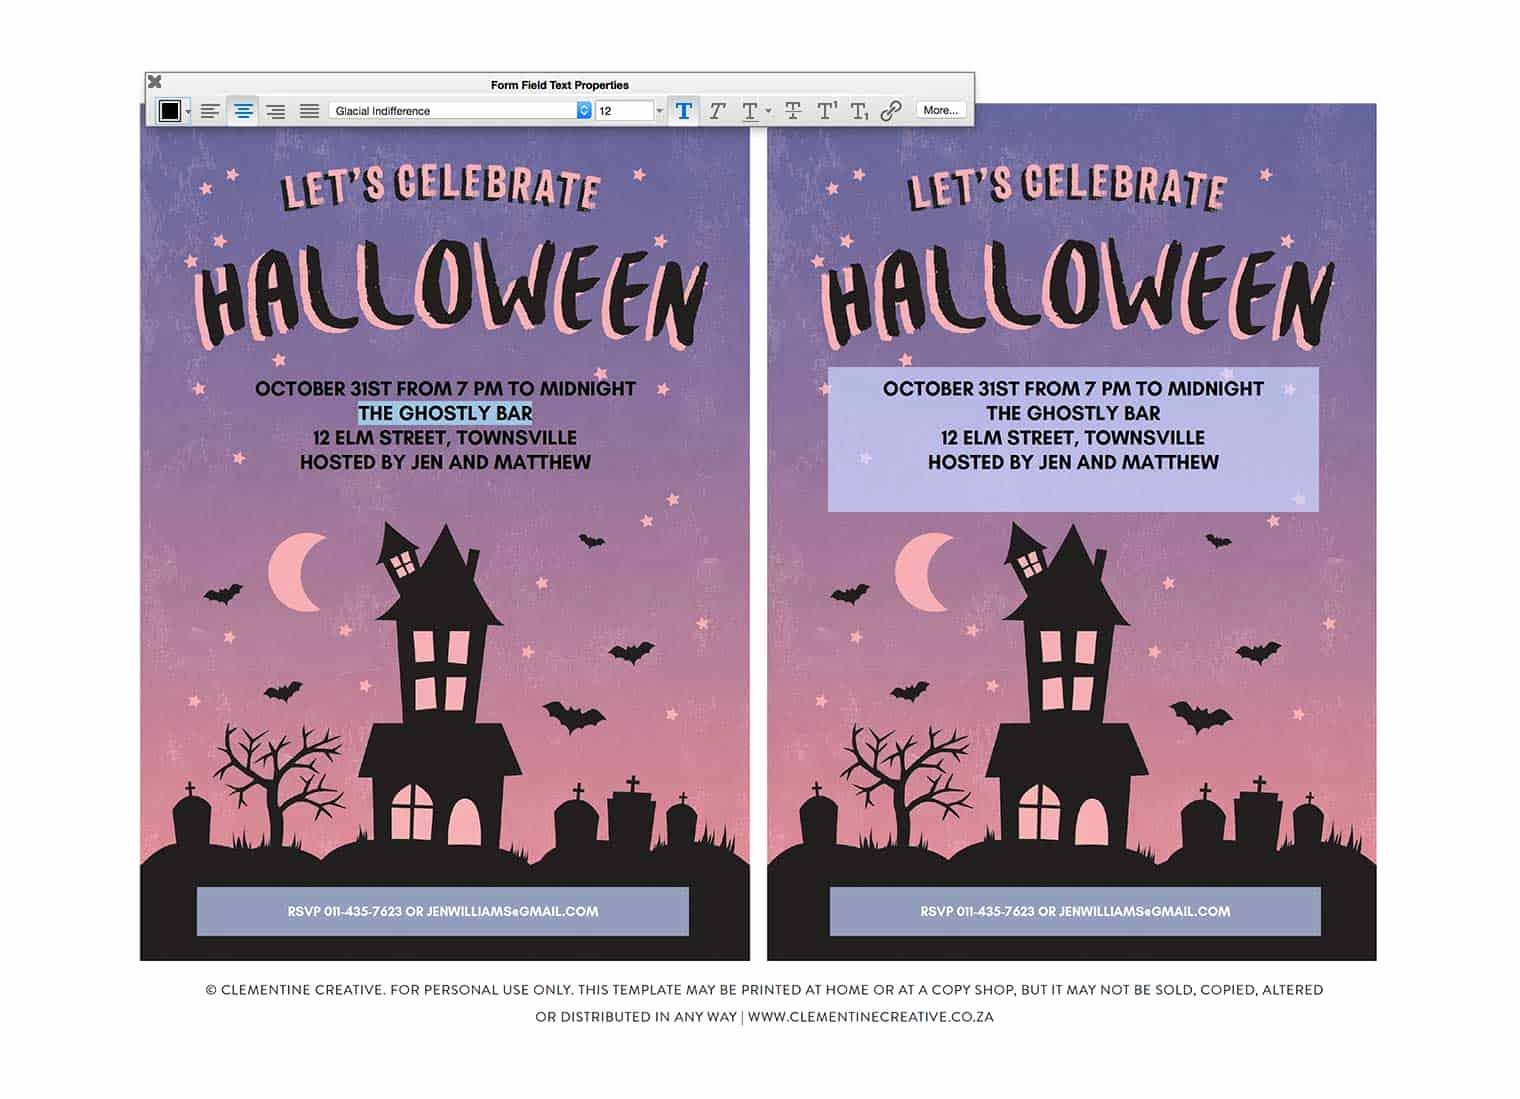 Halloween Party Invites Templates Awesome Free Printable Halloween Party Invitation Haunted House